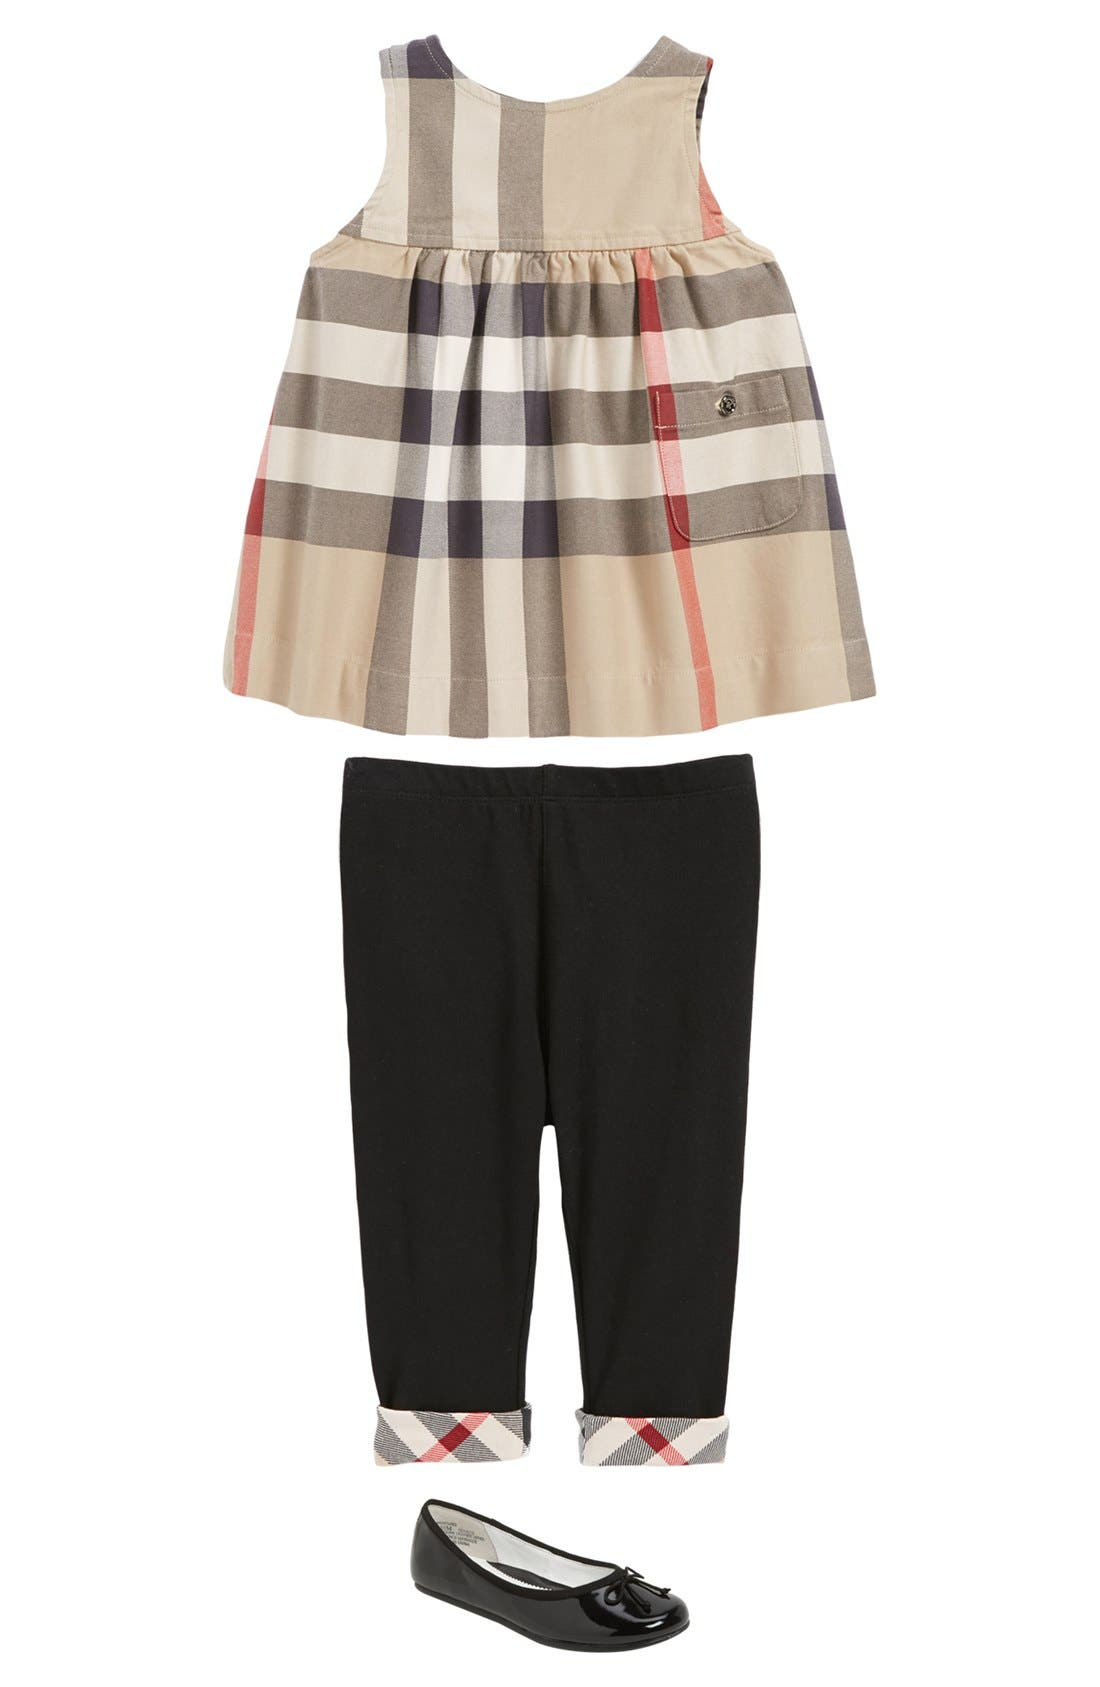 Main Image - Burberry Dress, Pants & Nordstrom Flat (Baby Girls)